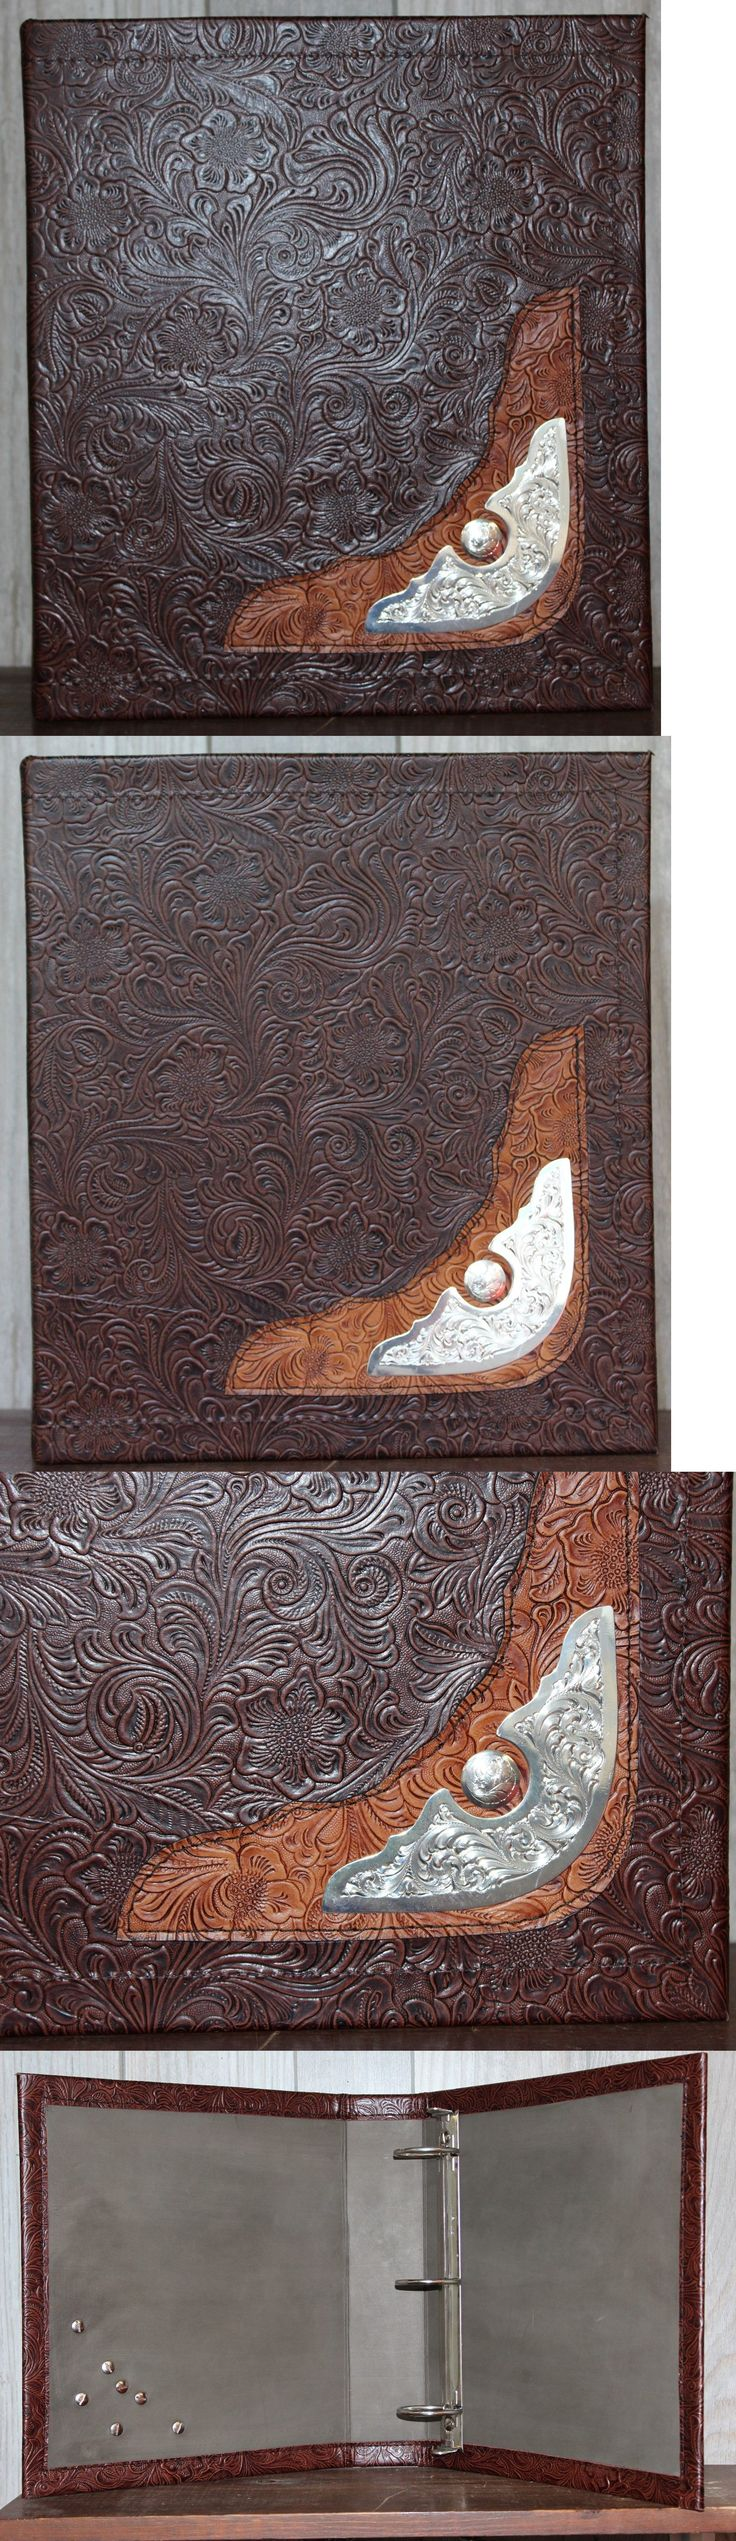 Conchos 159019: Montana Silver Saddle Trim Western Floral Cowhide Leather 2 3 Ring Binder -> BUY IT NOW ONLY: $79.95 on eBay!